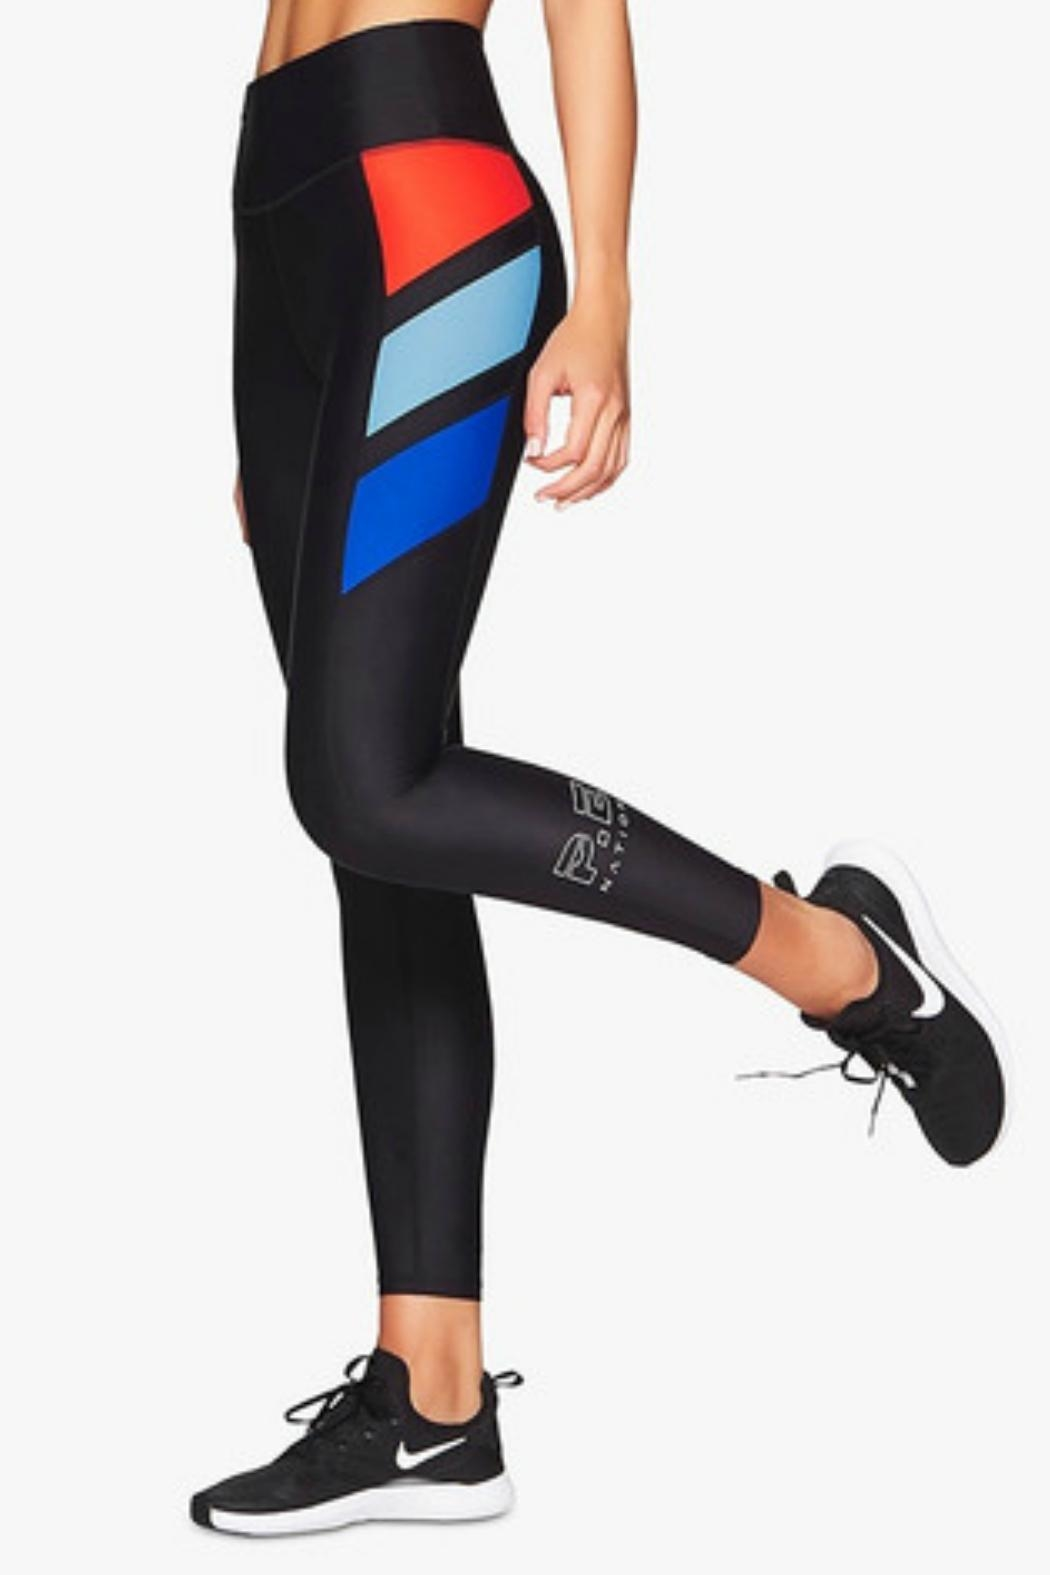 98a193b128cf2 P.E NATION The Substitute Legging from New Jersey by Back 2 Basics ...